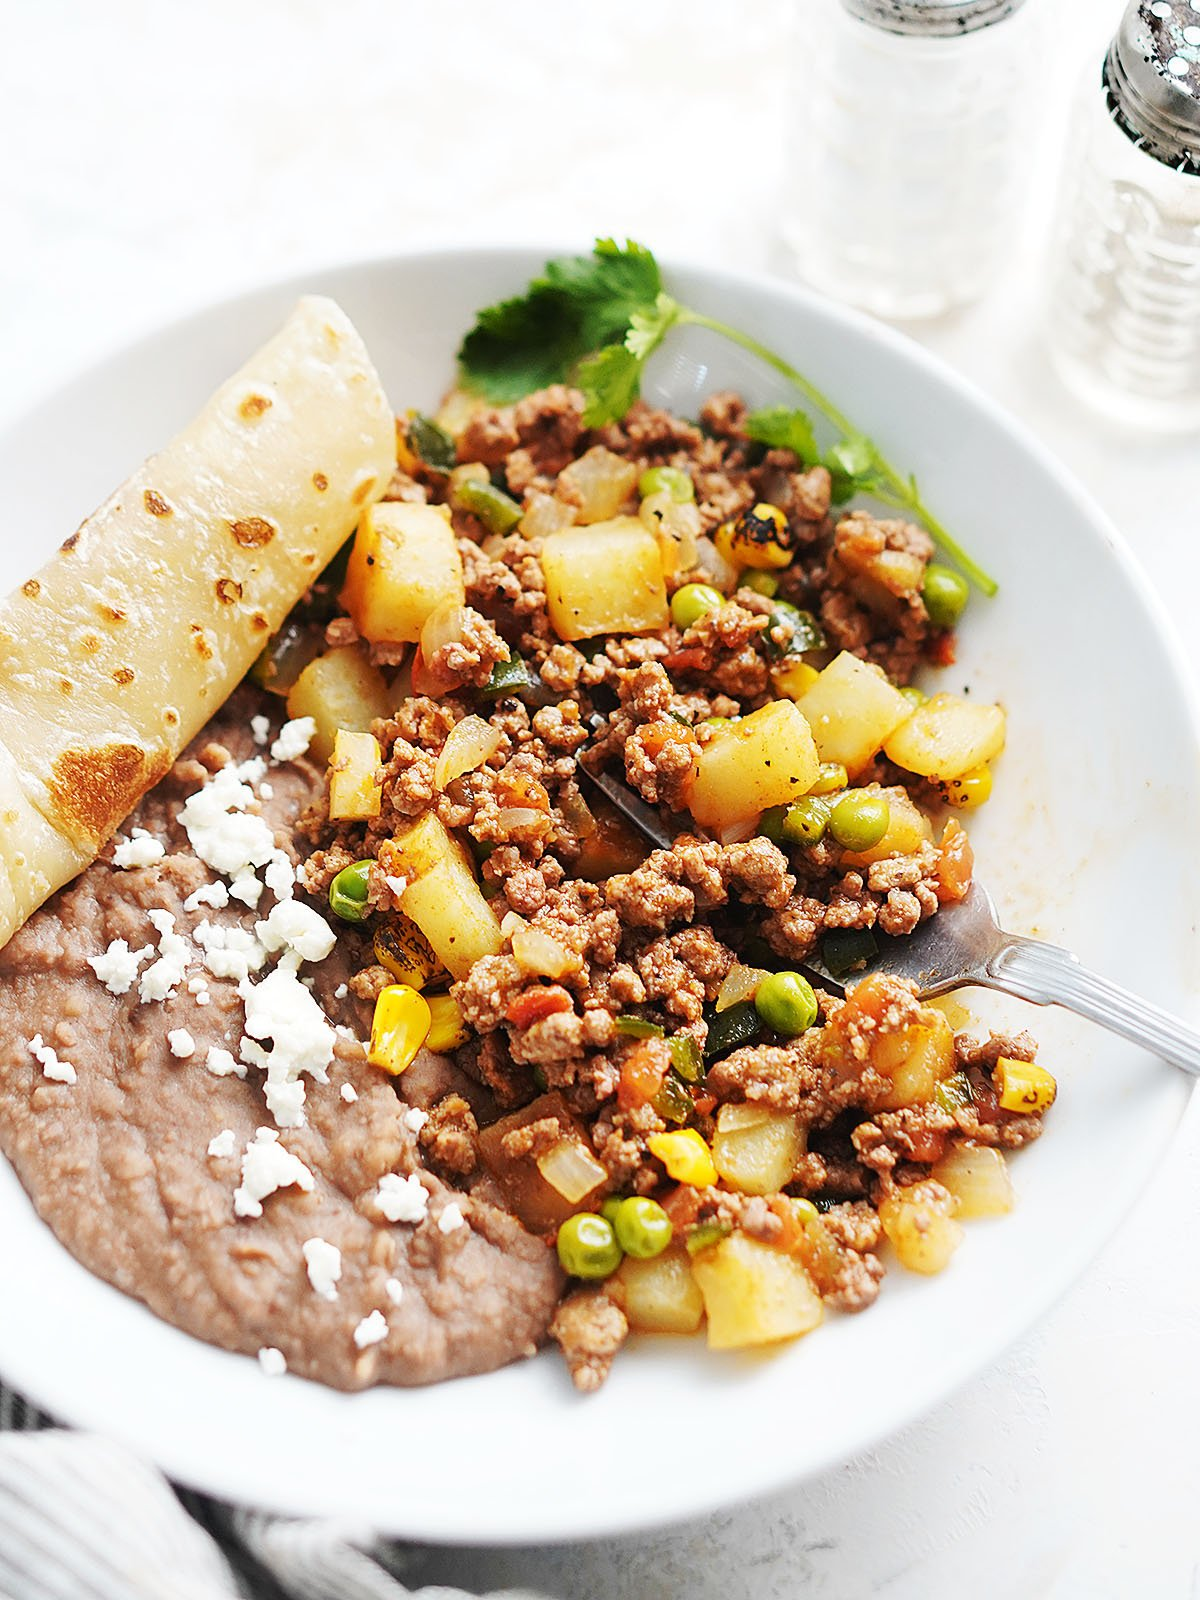 Ground beef and potatoes with beans on a white plate